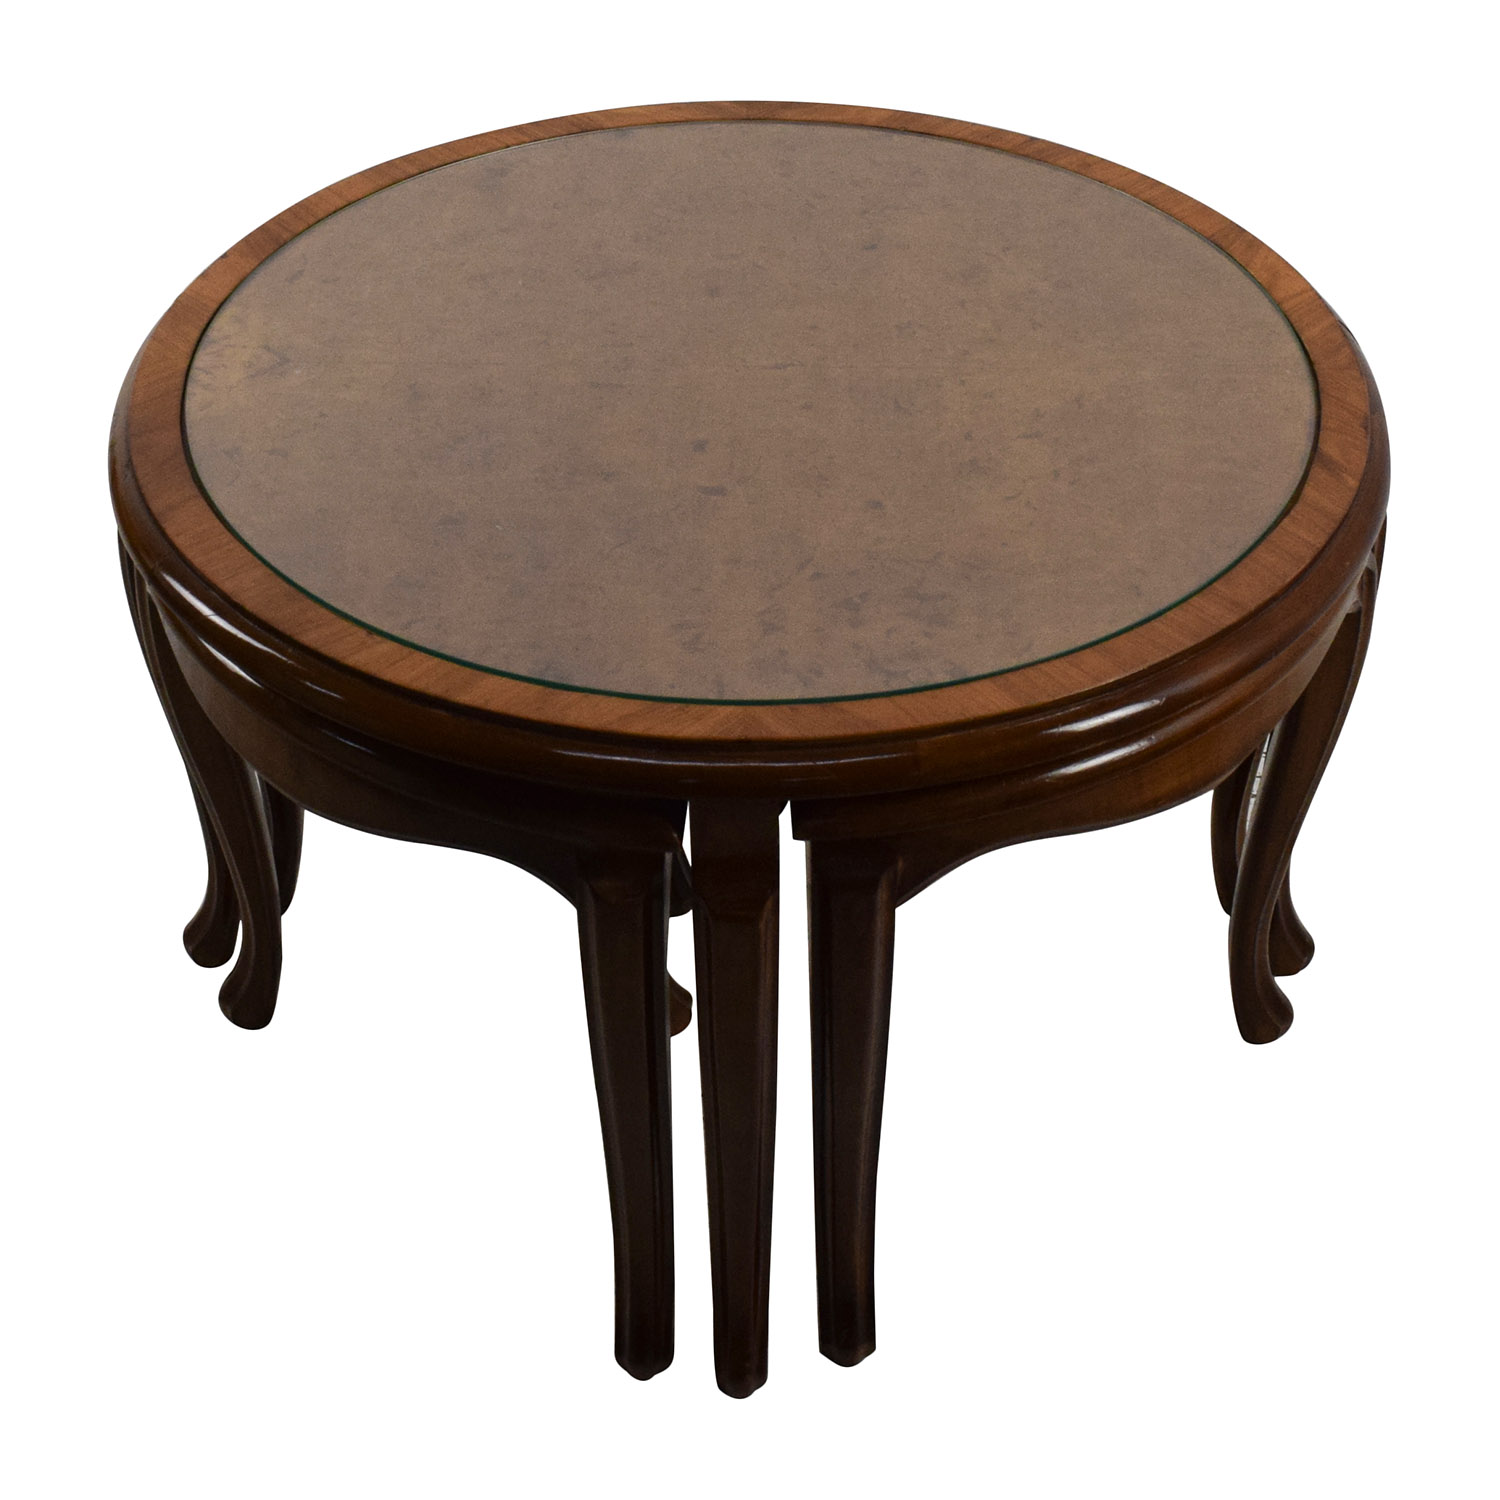 ... Round Glass Top Coffee Table With 4 Nesting Stools Tables ...